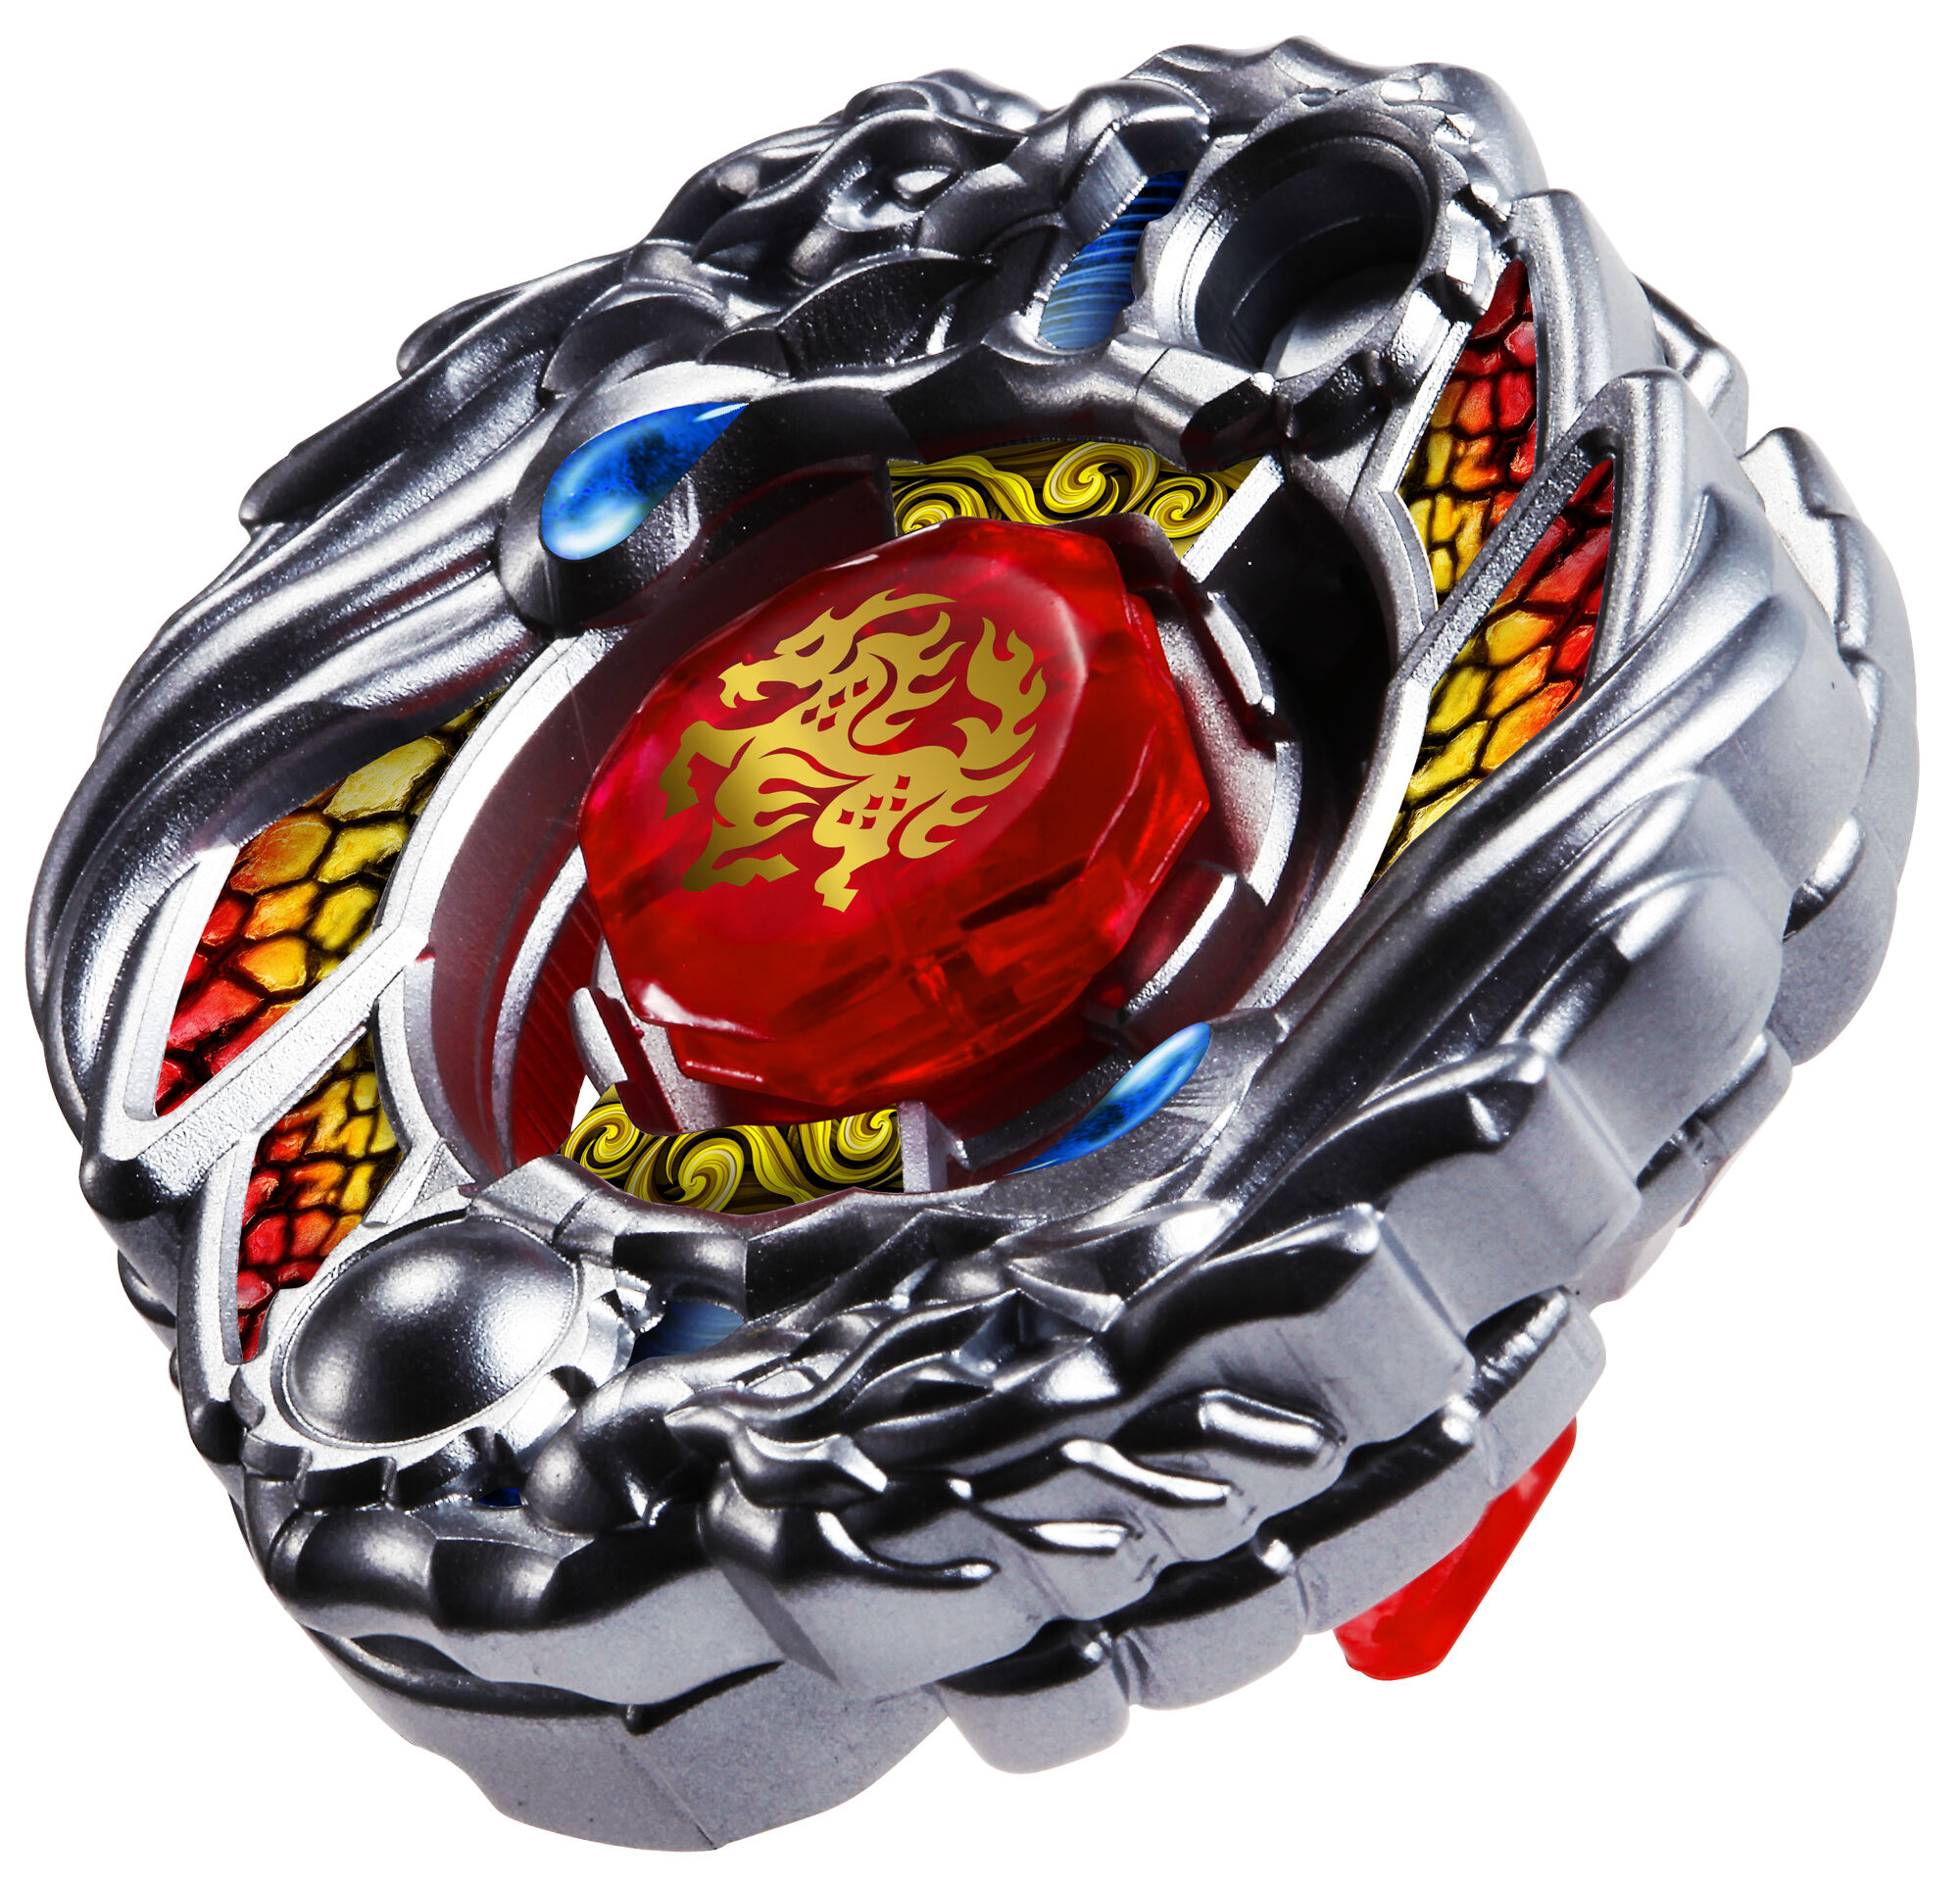 Thief zirago wa130hf beyblade wiki fandom powered by wikia - Beyblade shogun steel toupie ...